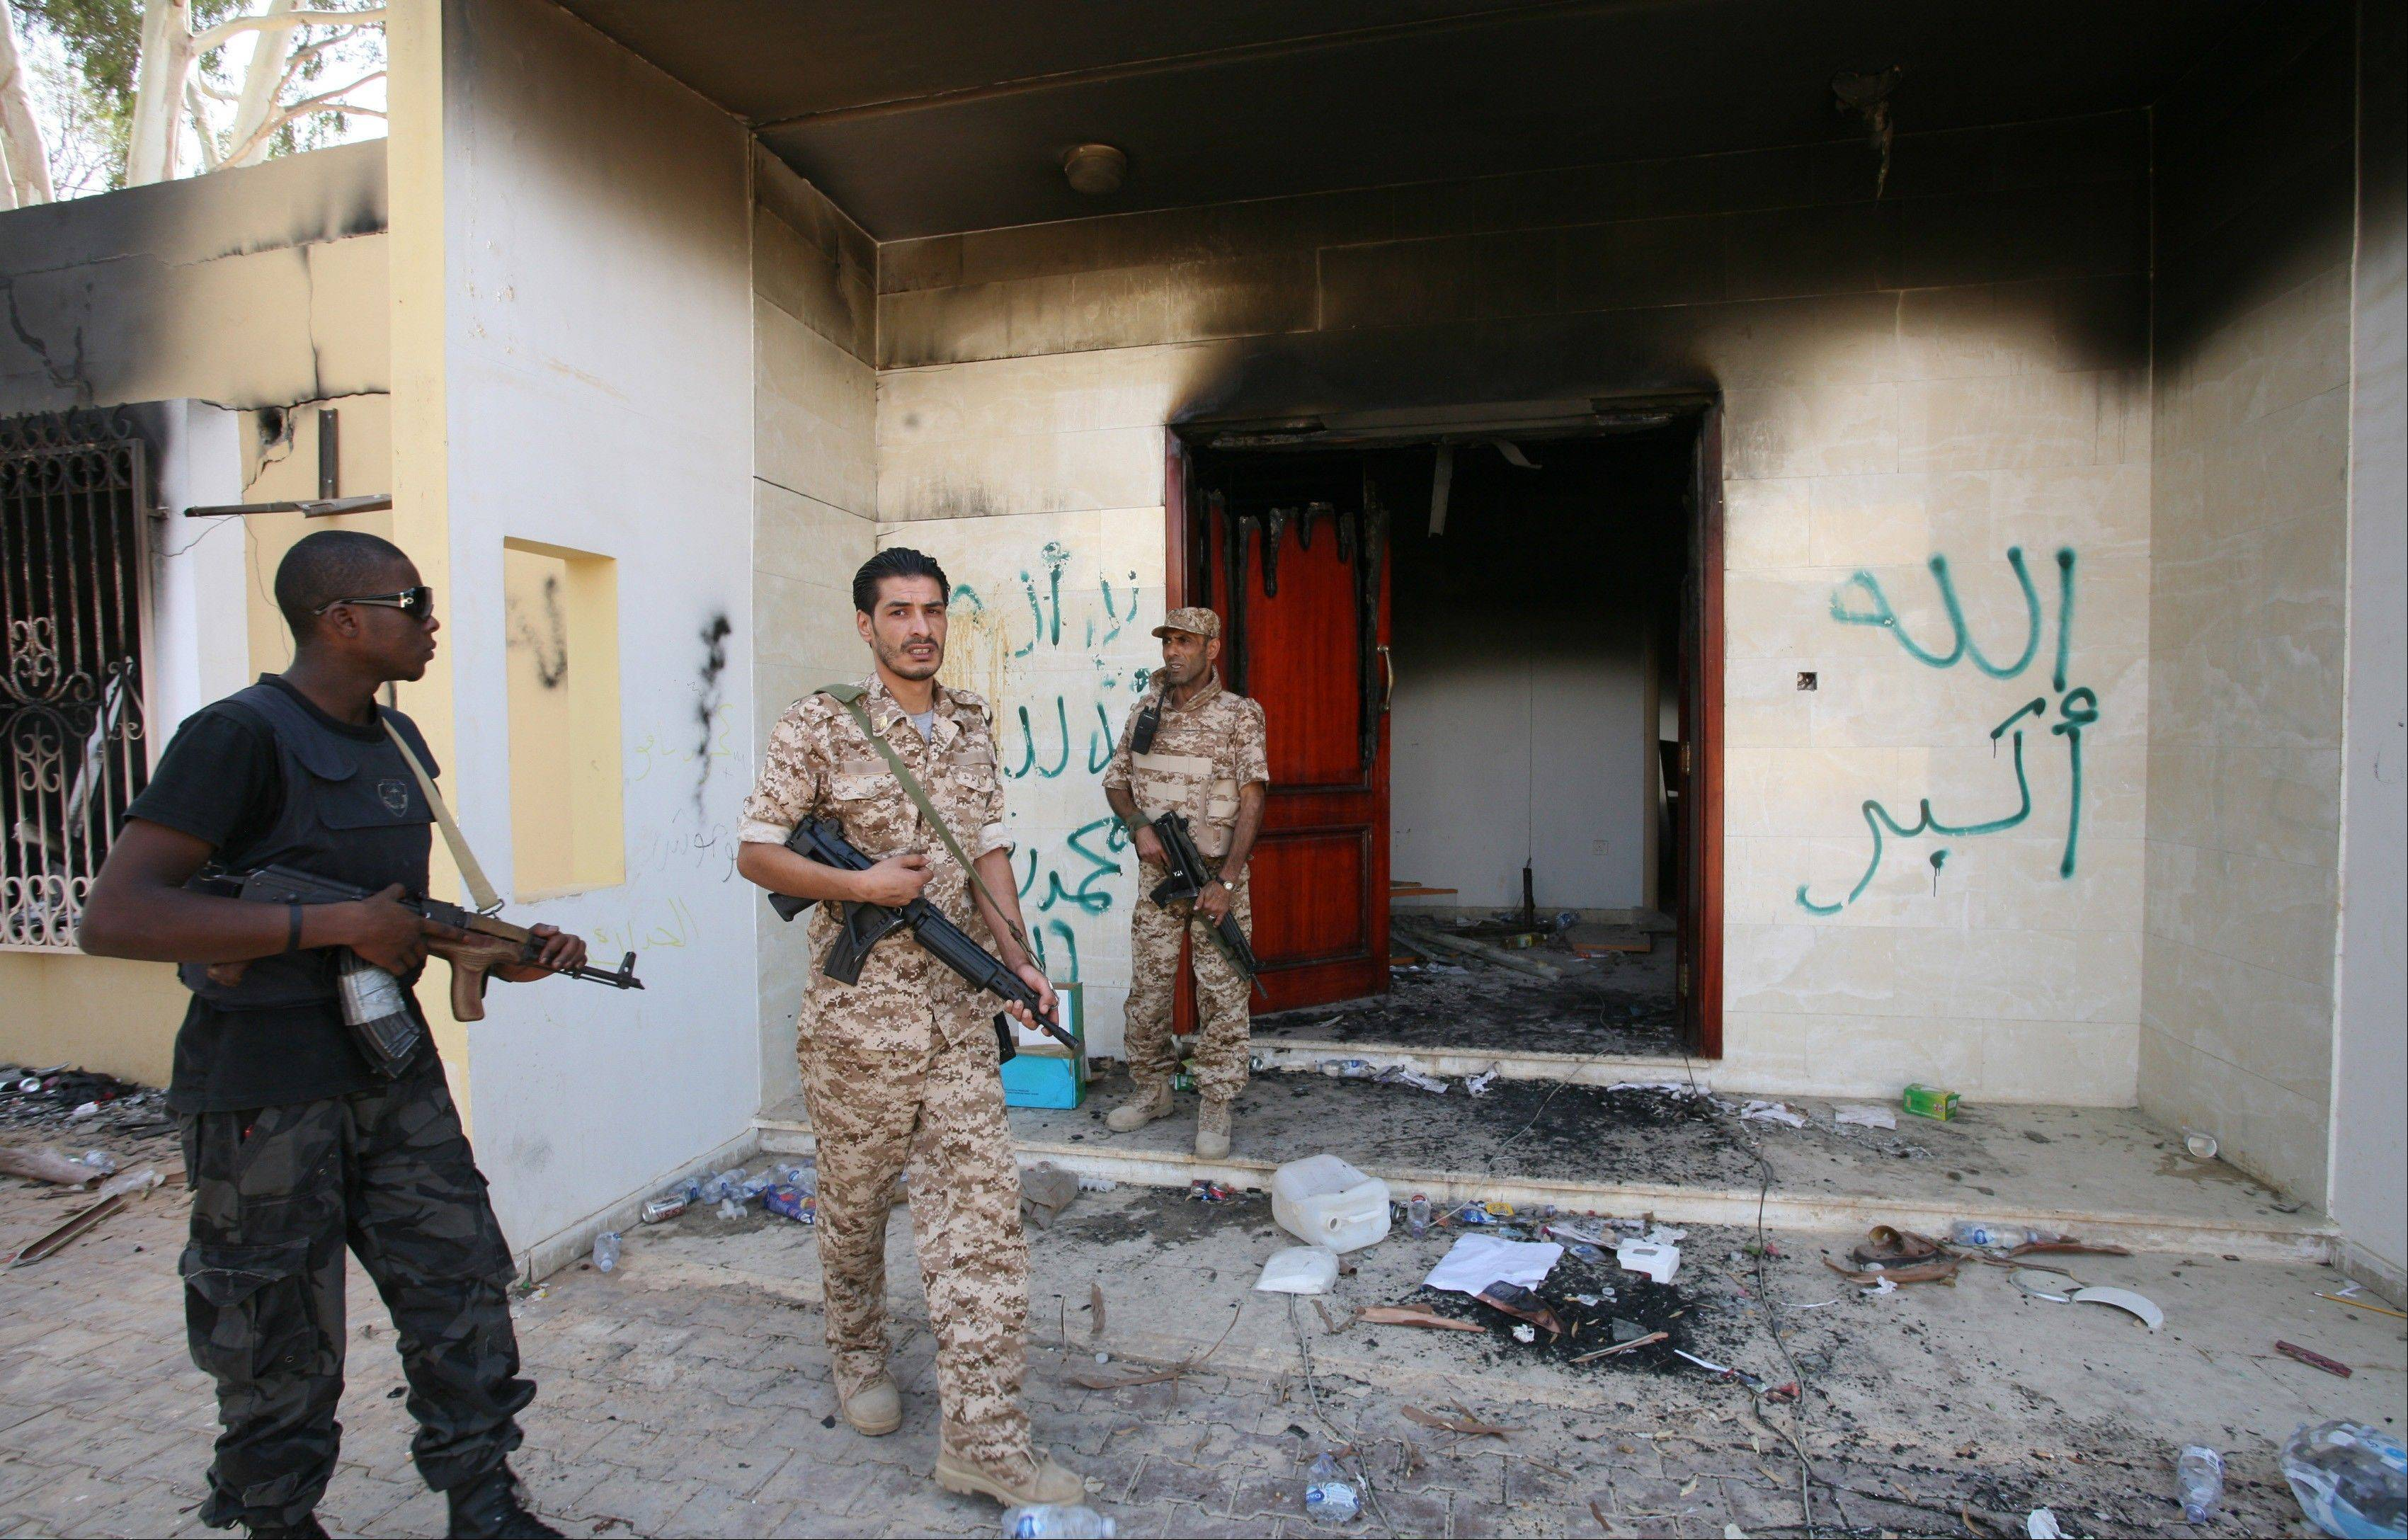 Libyan military guards check one of the U.S. Consulate�s burnt buildings in Benghazi, Libya, Friday. The American ambassador to Libya and three other Americans were killed when a mob of protesters and gunmen overwhelmed the U.S. Consulate in Benghazi, setting fire to it.